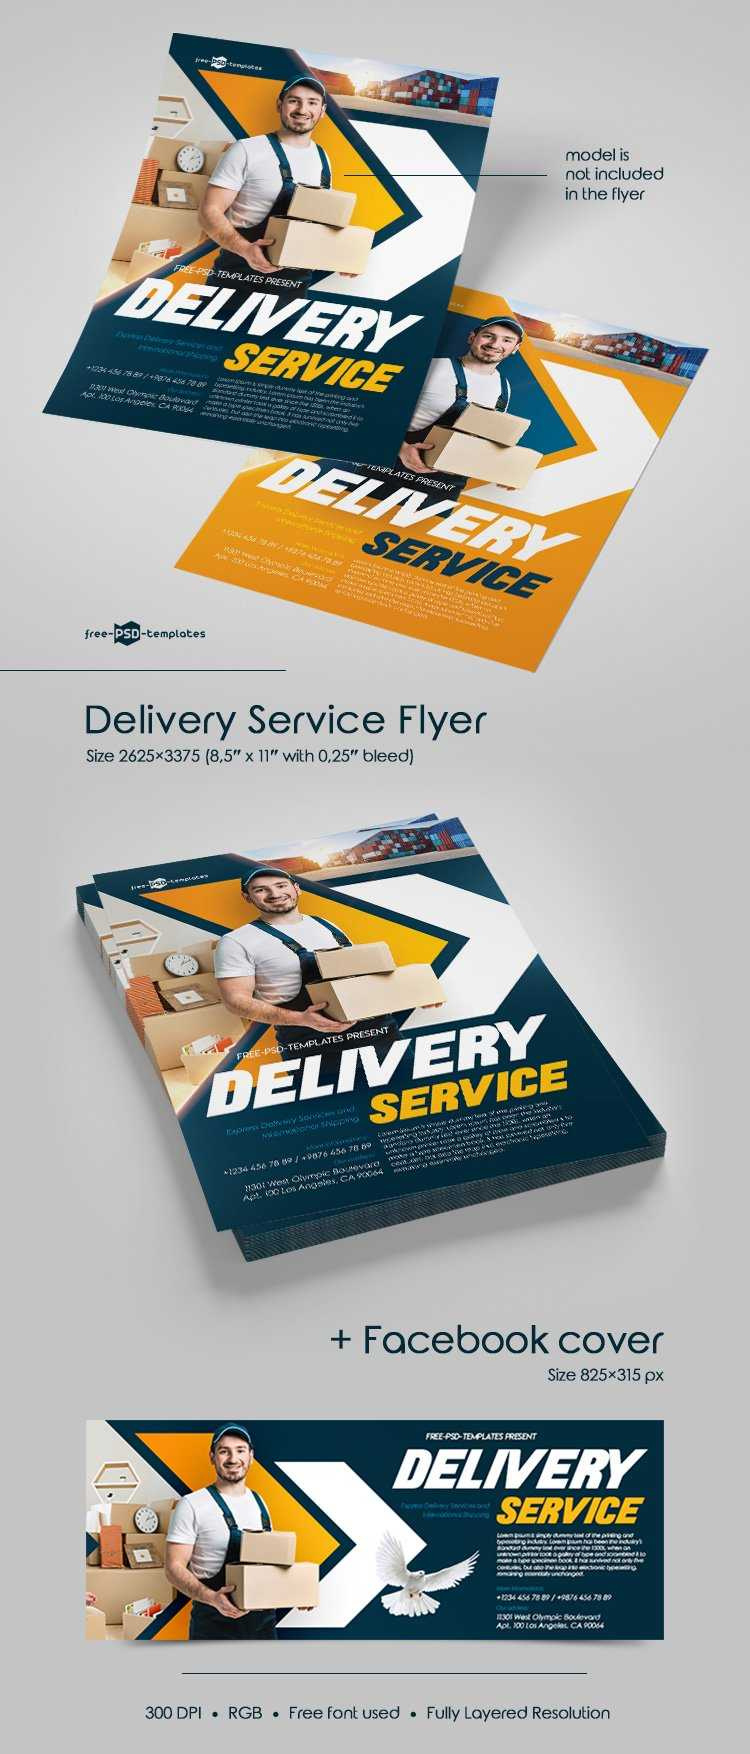 Free Delivery Service Flyer In Psd | Free Psd Templates Intended For Delivery Flyer Template